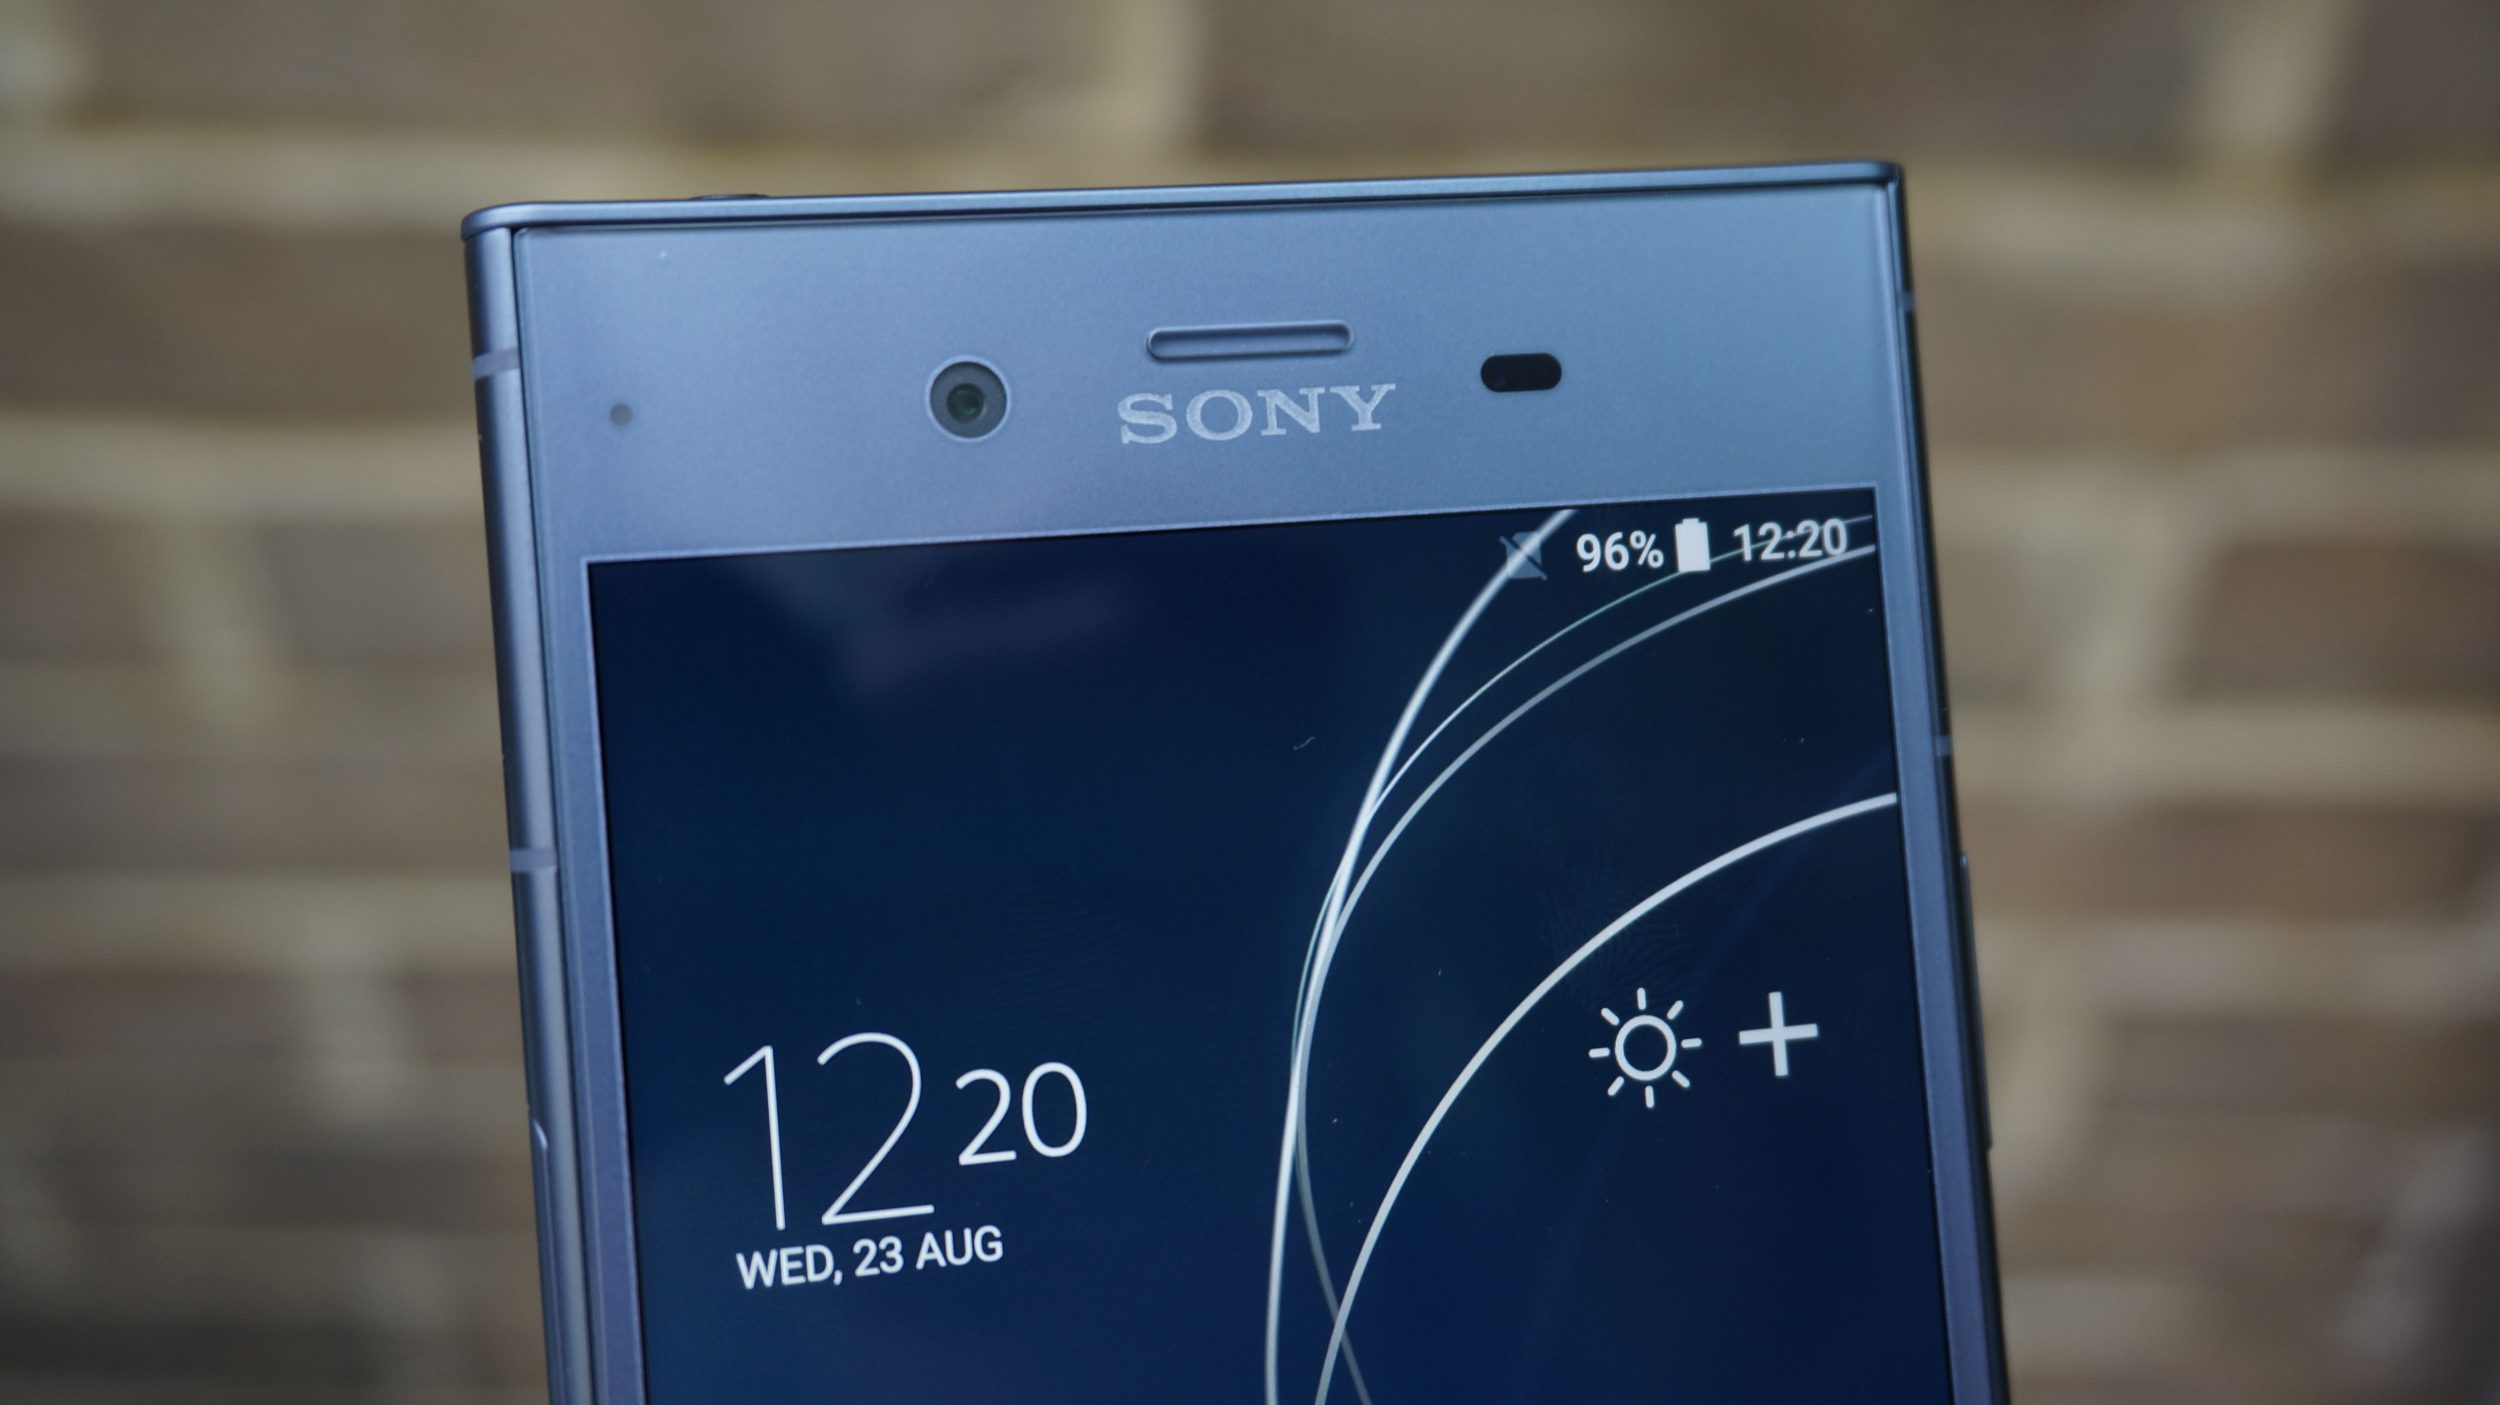 Live Wallpapers For Sony Xperia Xz Sony Xperia Xz1 Moonlit Blue 2500x1405 Wallpaper Teahub Io